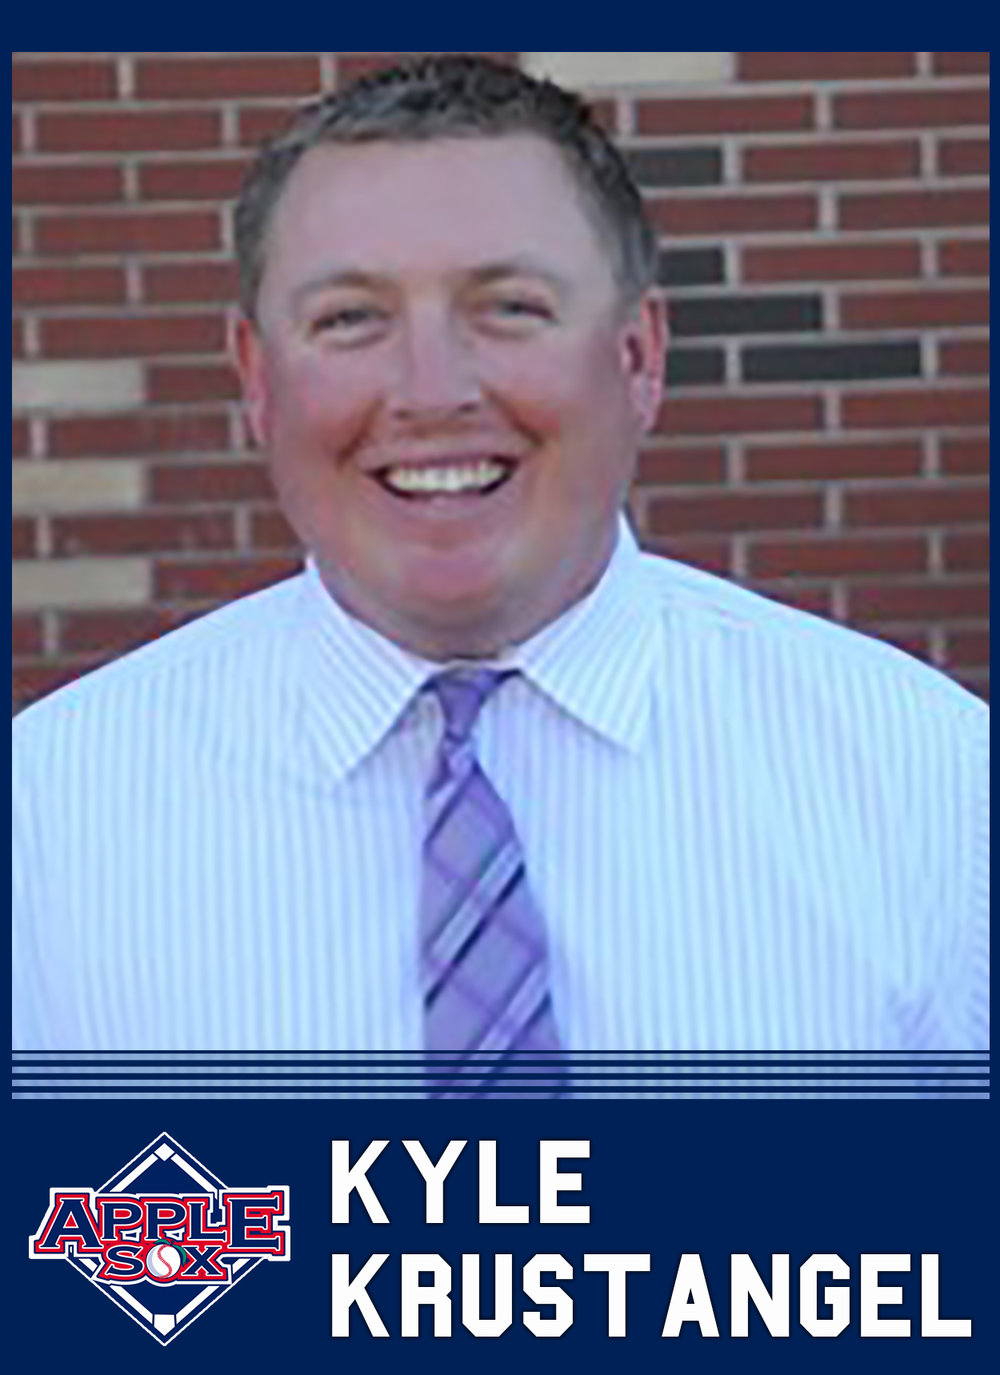 Current Yakima Valley Community College baseball coach Kyle Krustangel, will be the fourth coach of the AppleSox, the team announced, Wednesday.